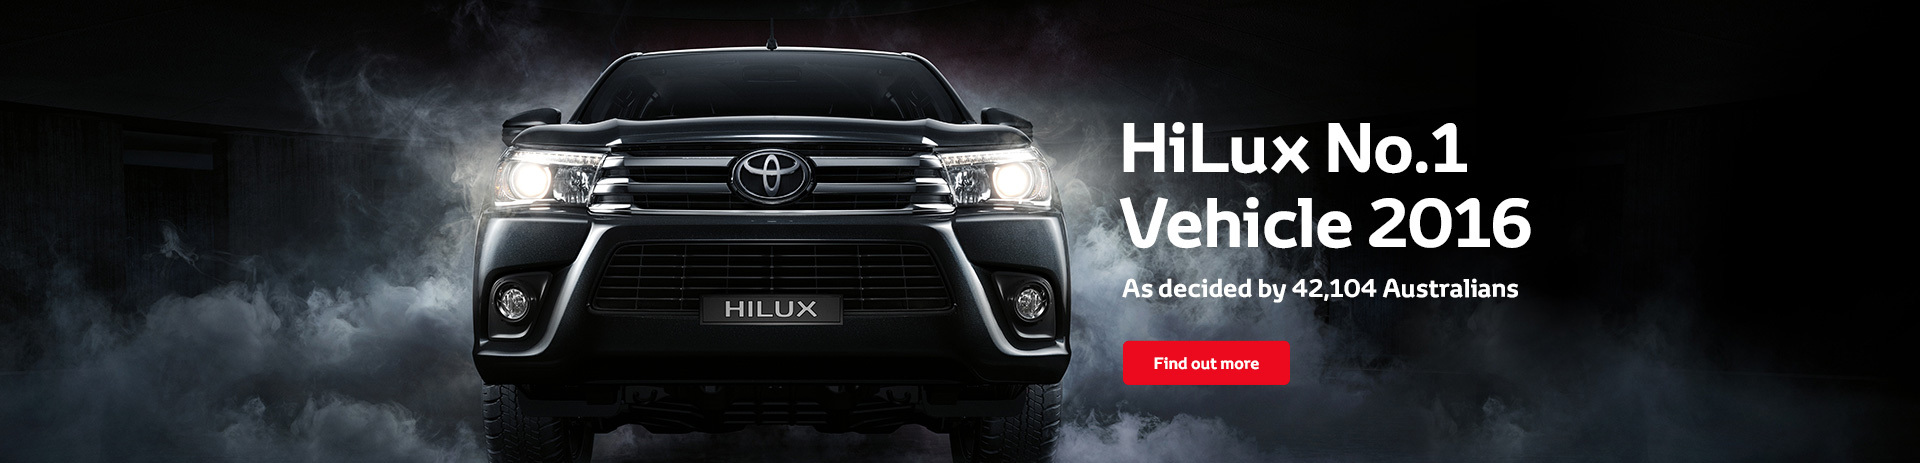 HiLux is best selling vehicle in 2016